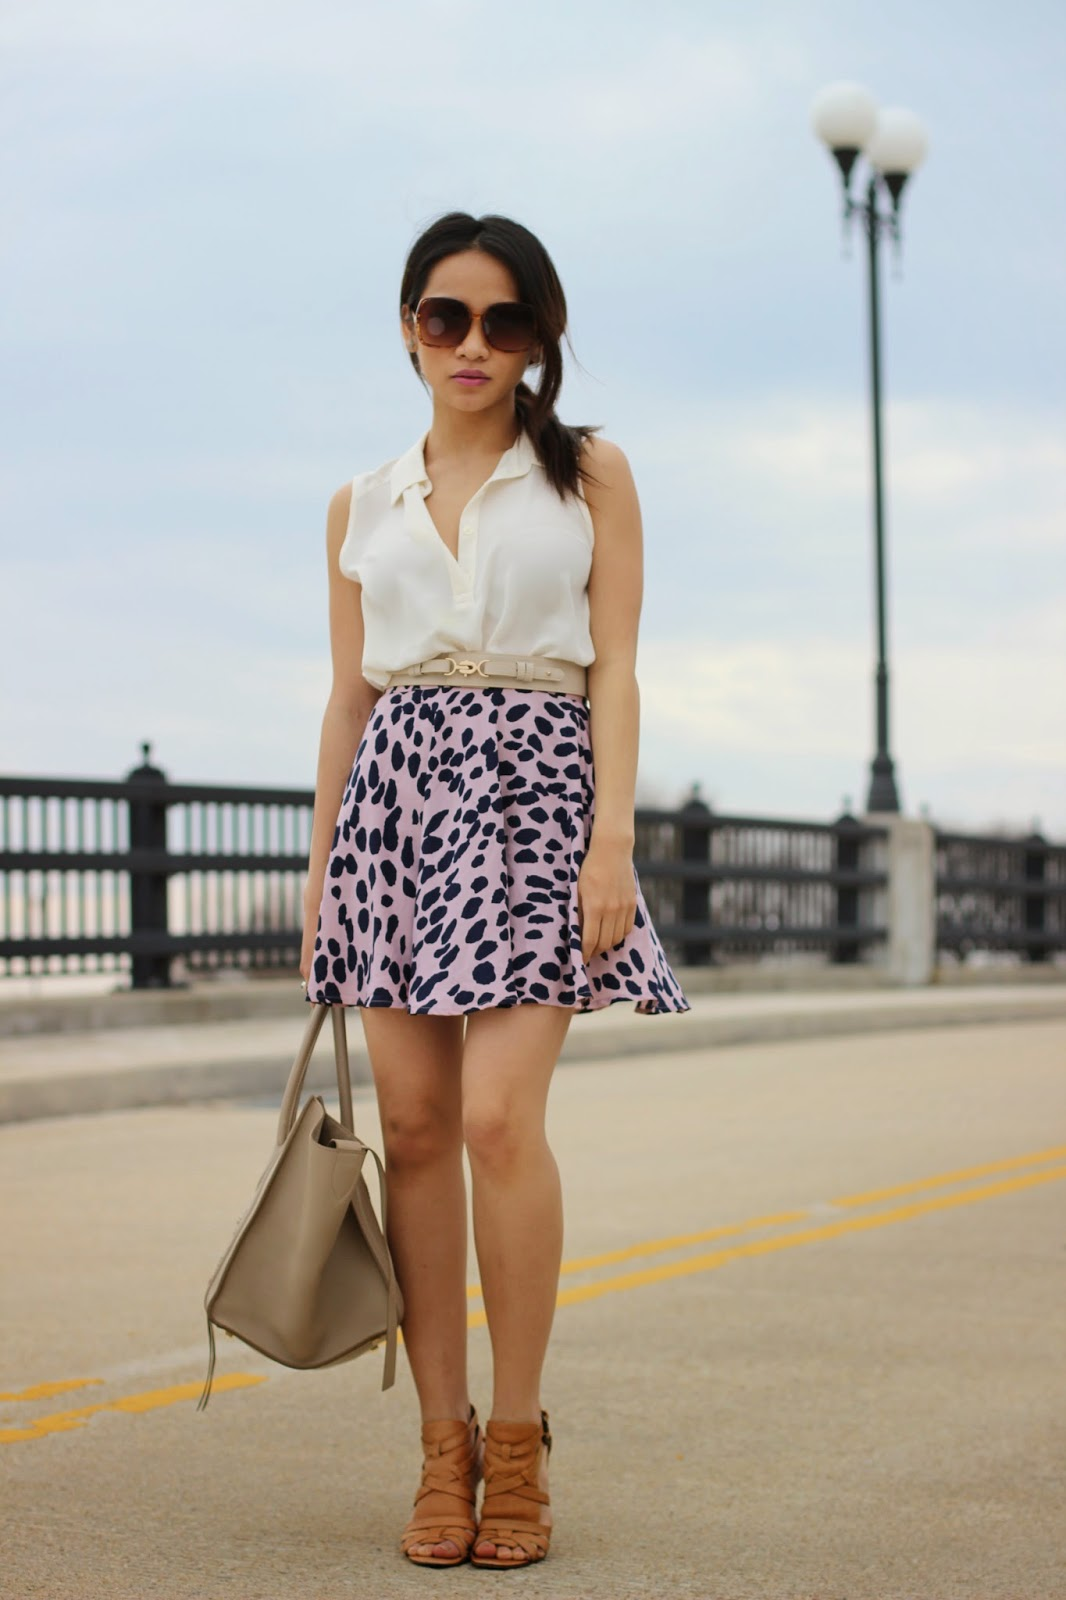 forever21 skirt, taupe celine phantom bag, melba nguyen, celine phantom bag, sole trekking